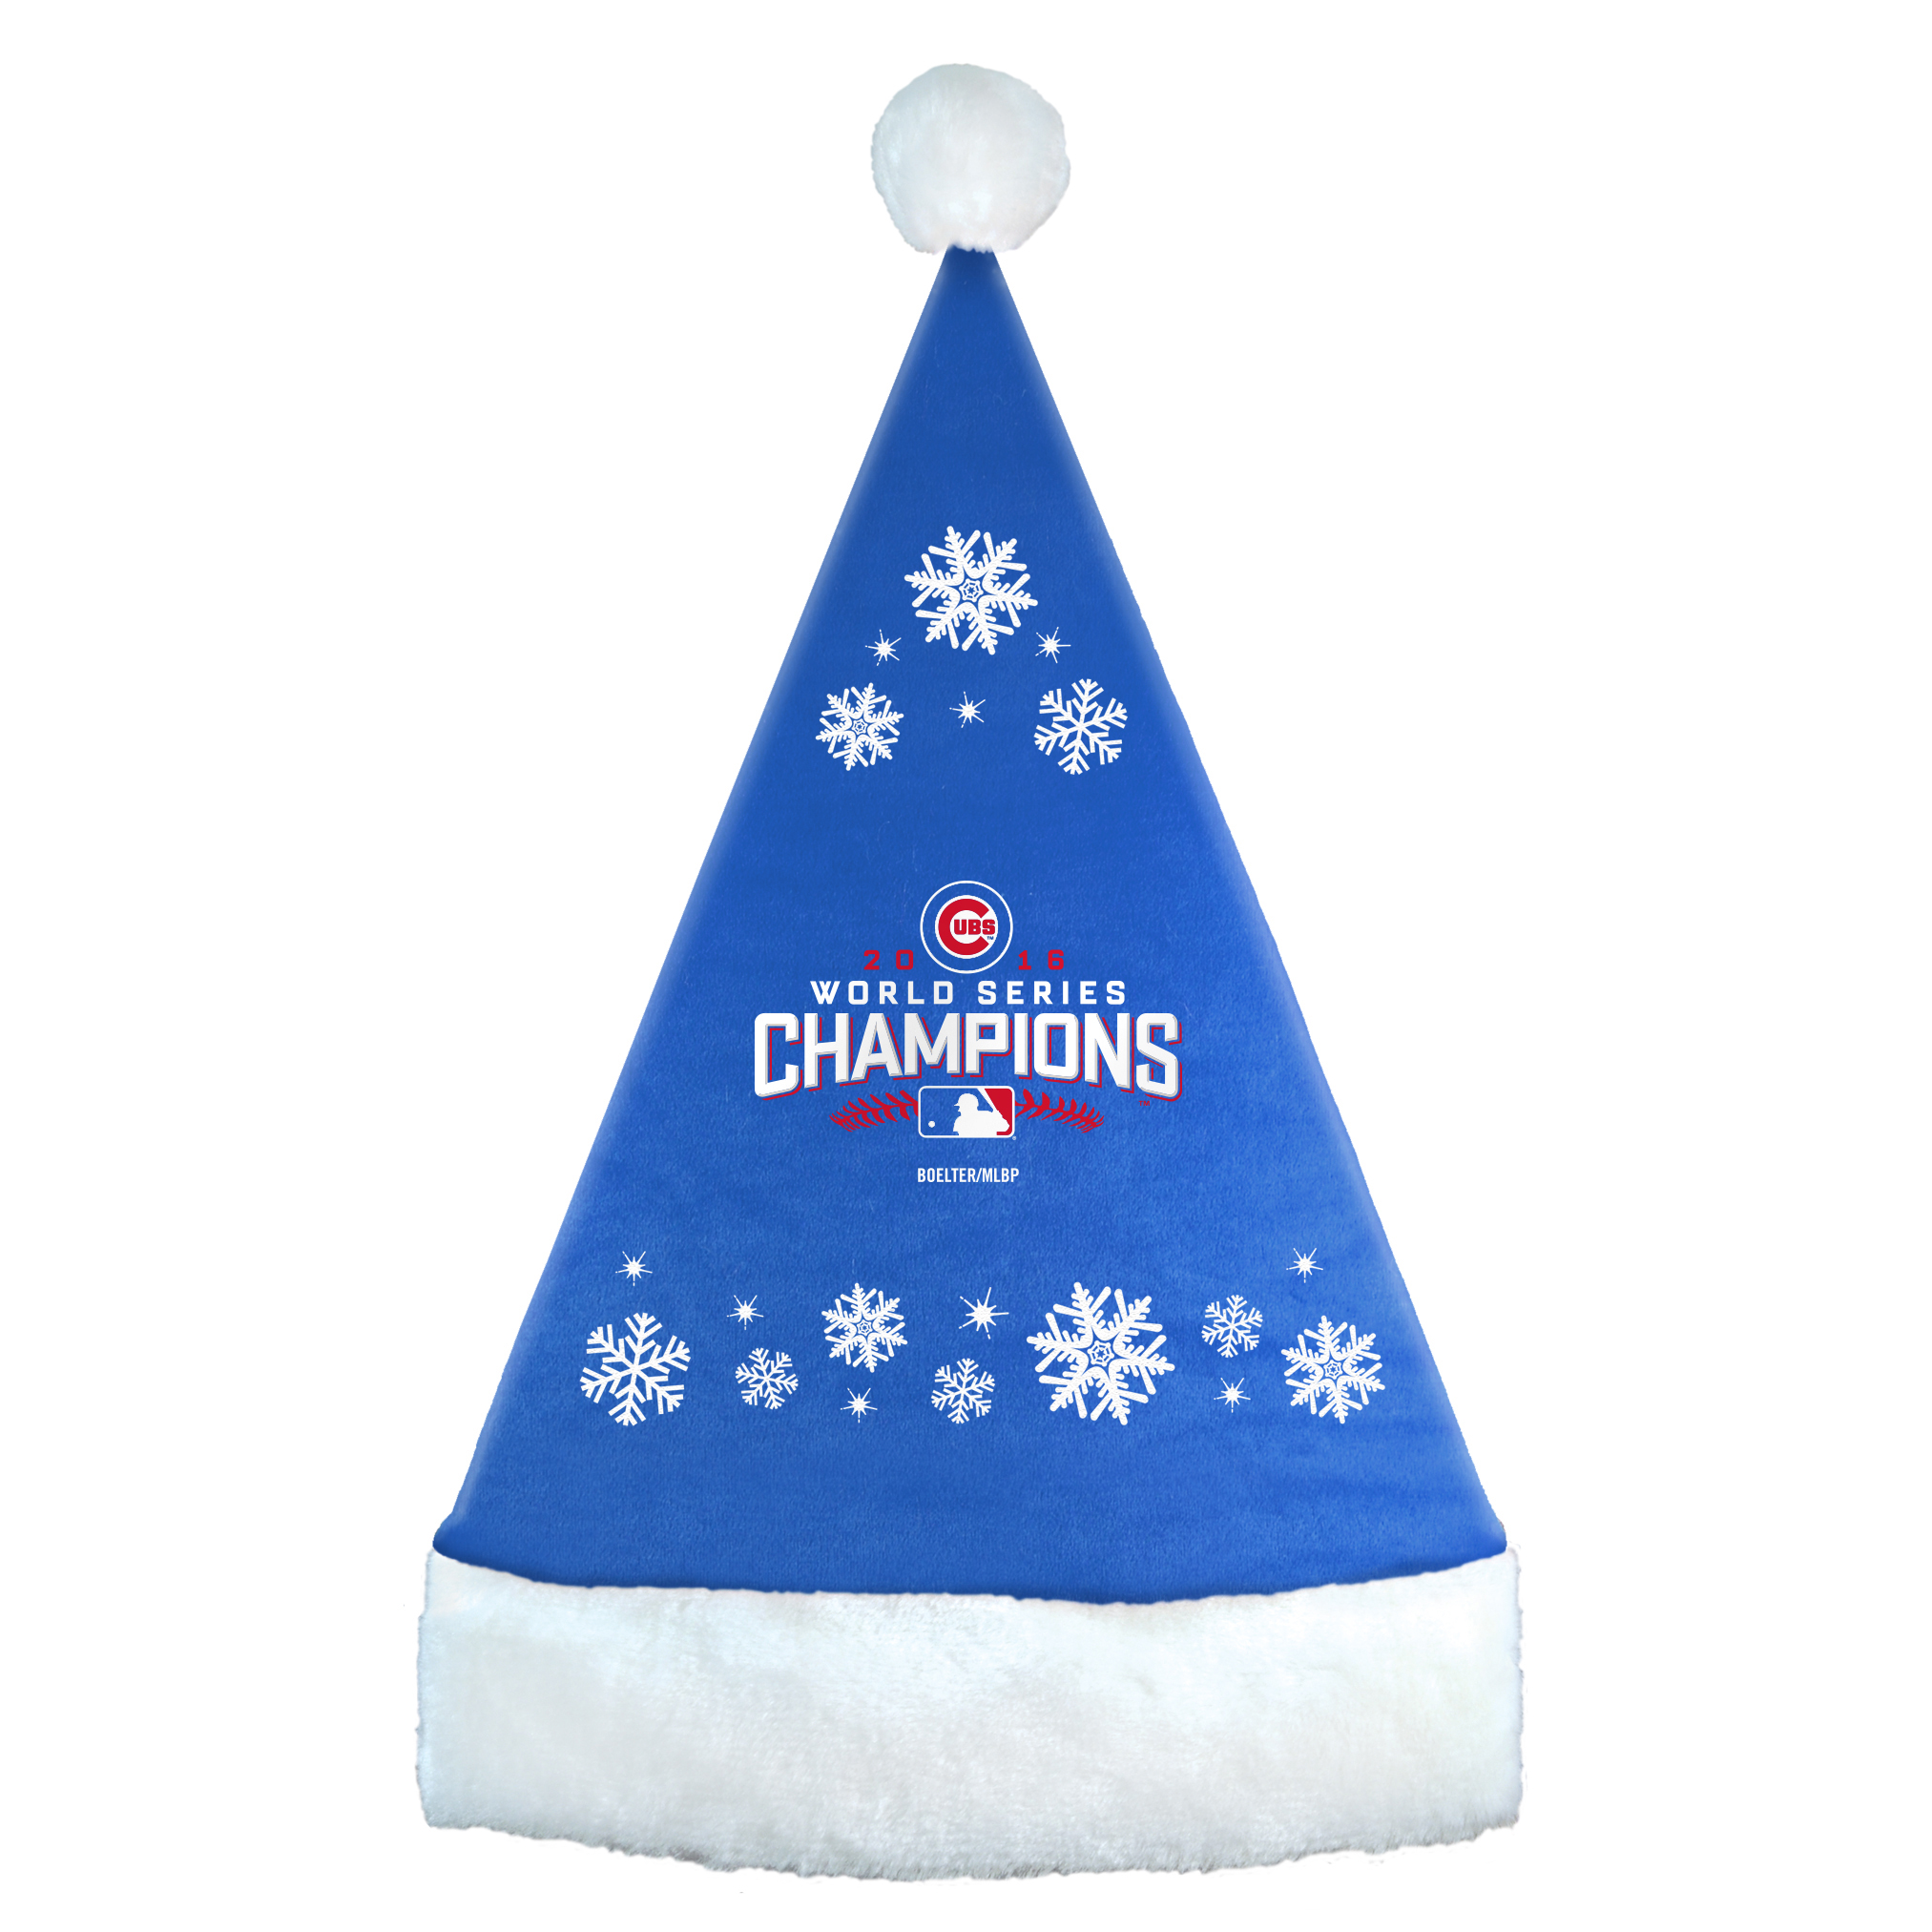 Chicago Cubs 2016 World Series Champions Snowflake Hat - No Size